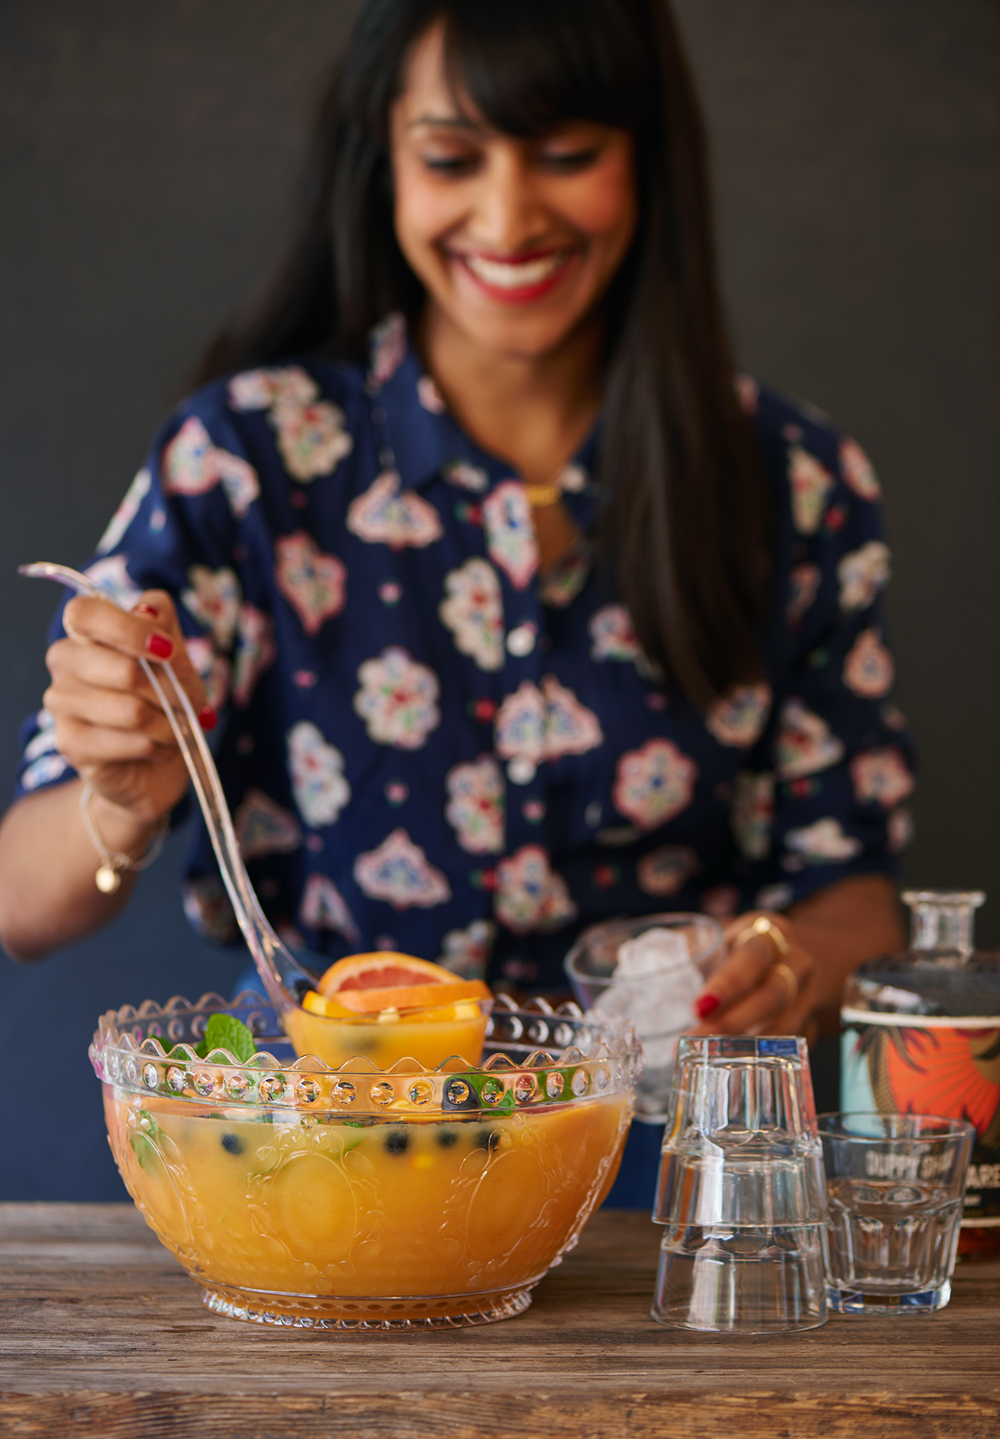 lifestyle image of woman serving rum punch